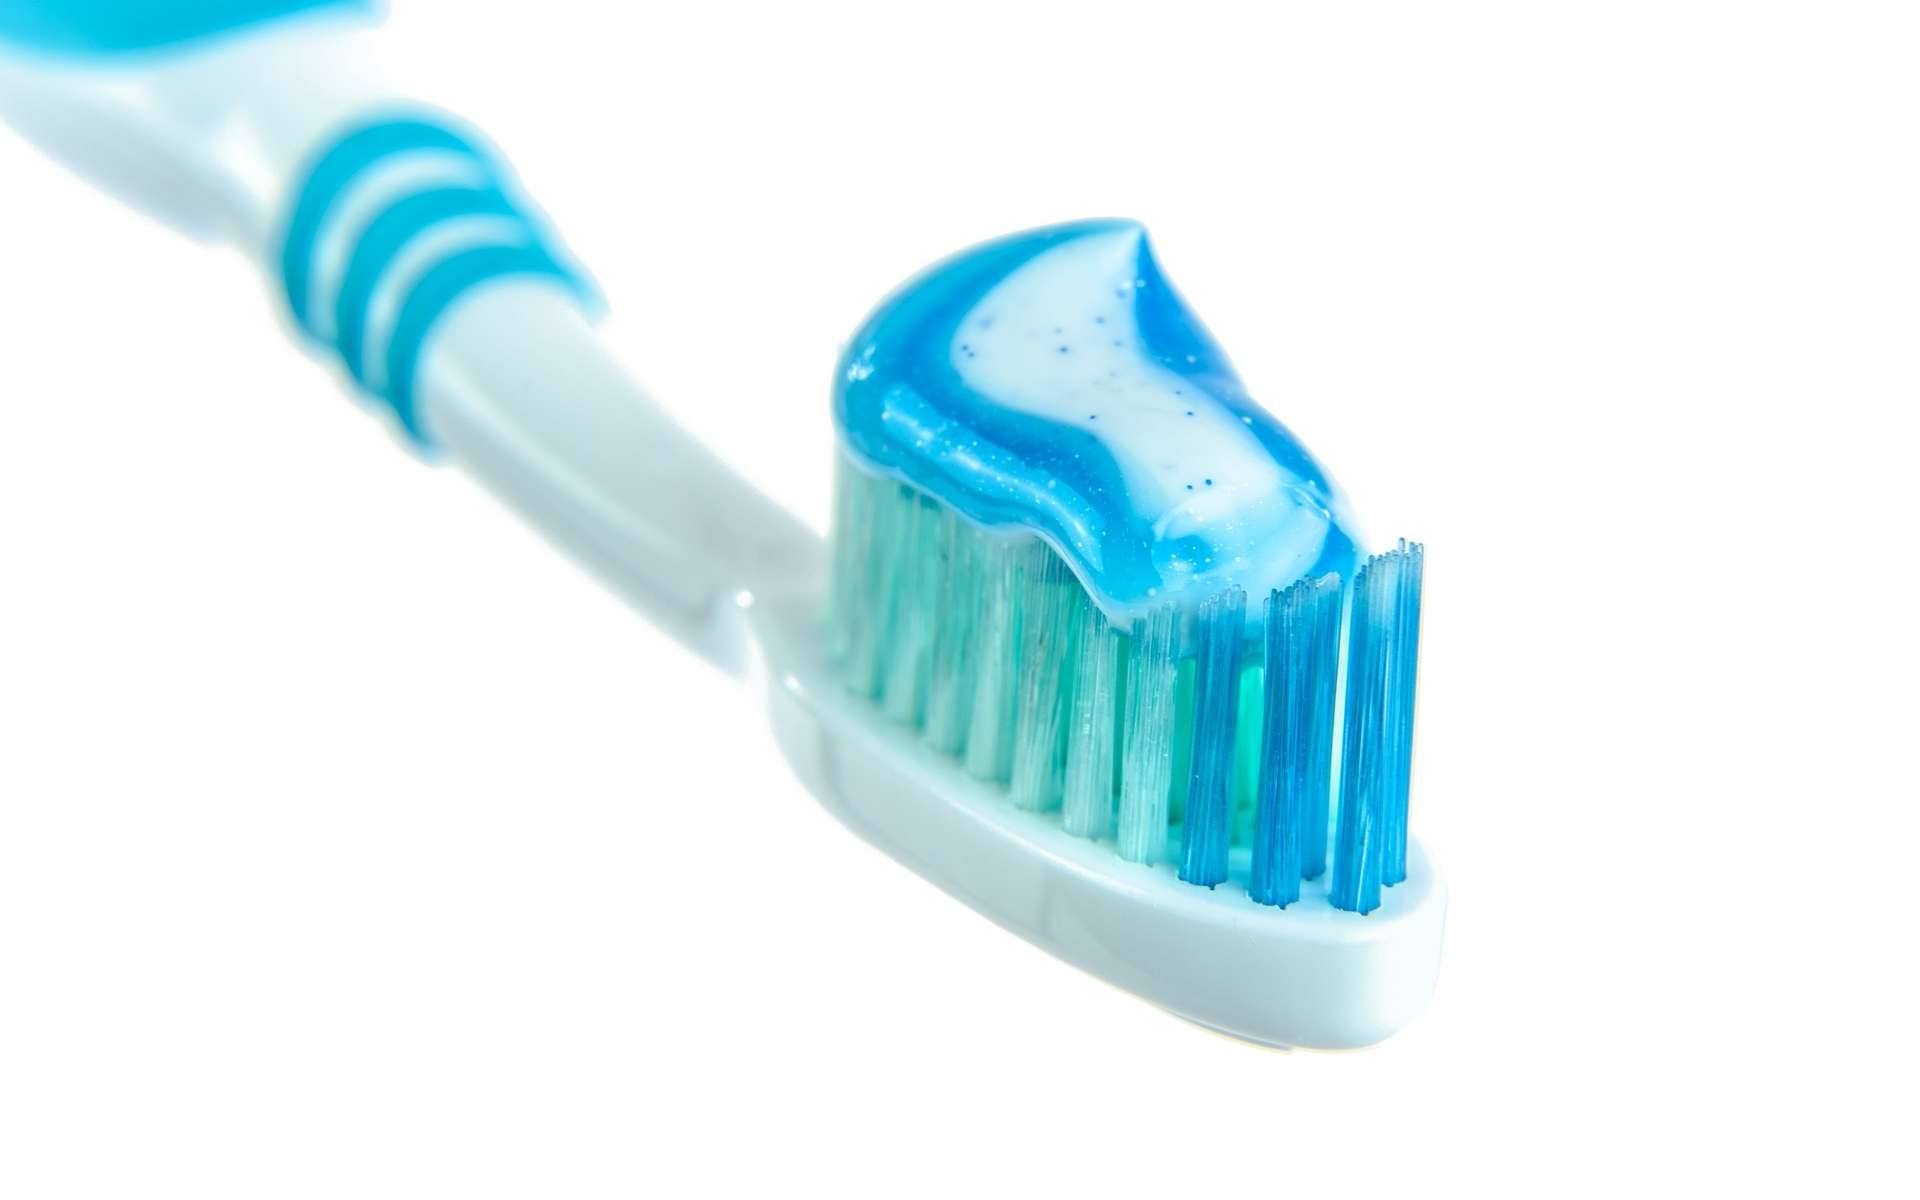 Beaucoup de dentifrices contiennent du dioxyde de titane. © Image par Photo Mix de Pixabay